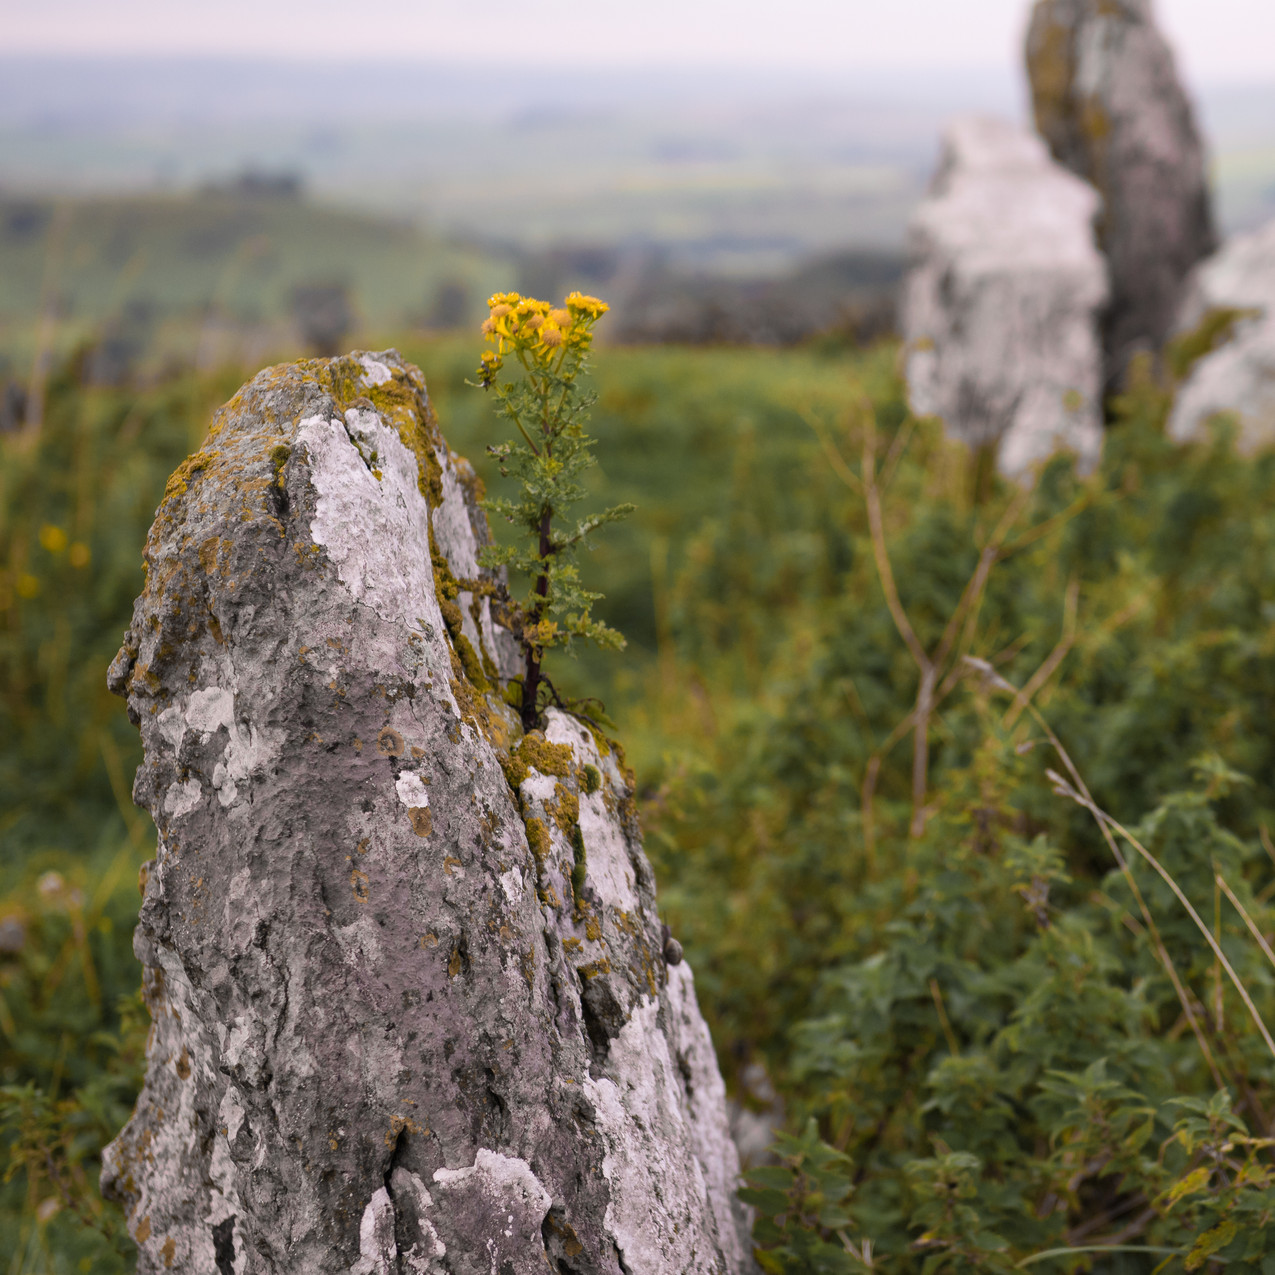 Rocky outcrop flowers